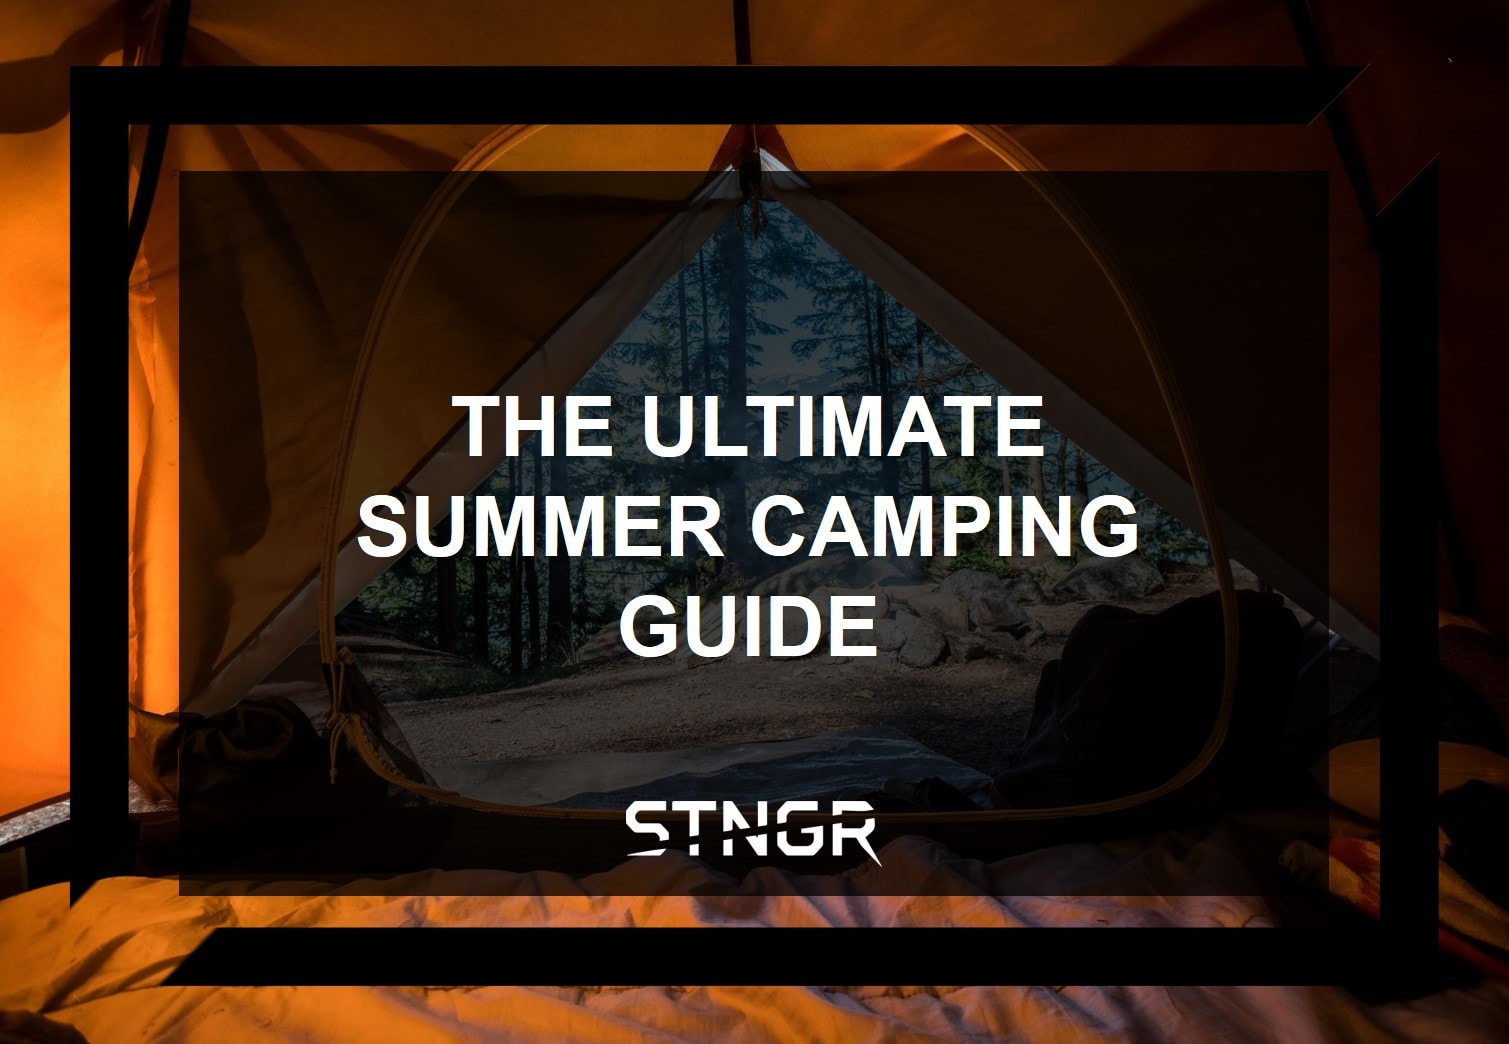 The Ultimate Summer Camping Guide